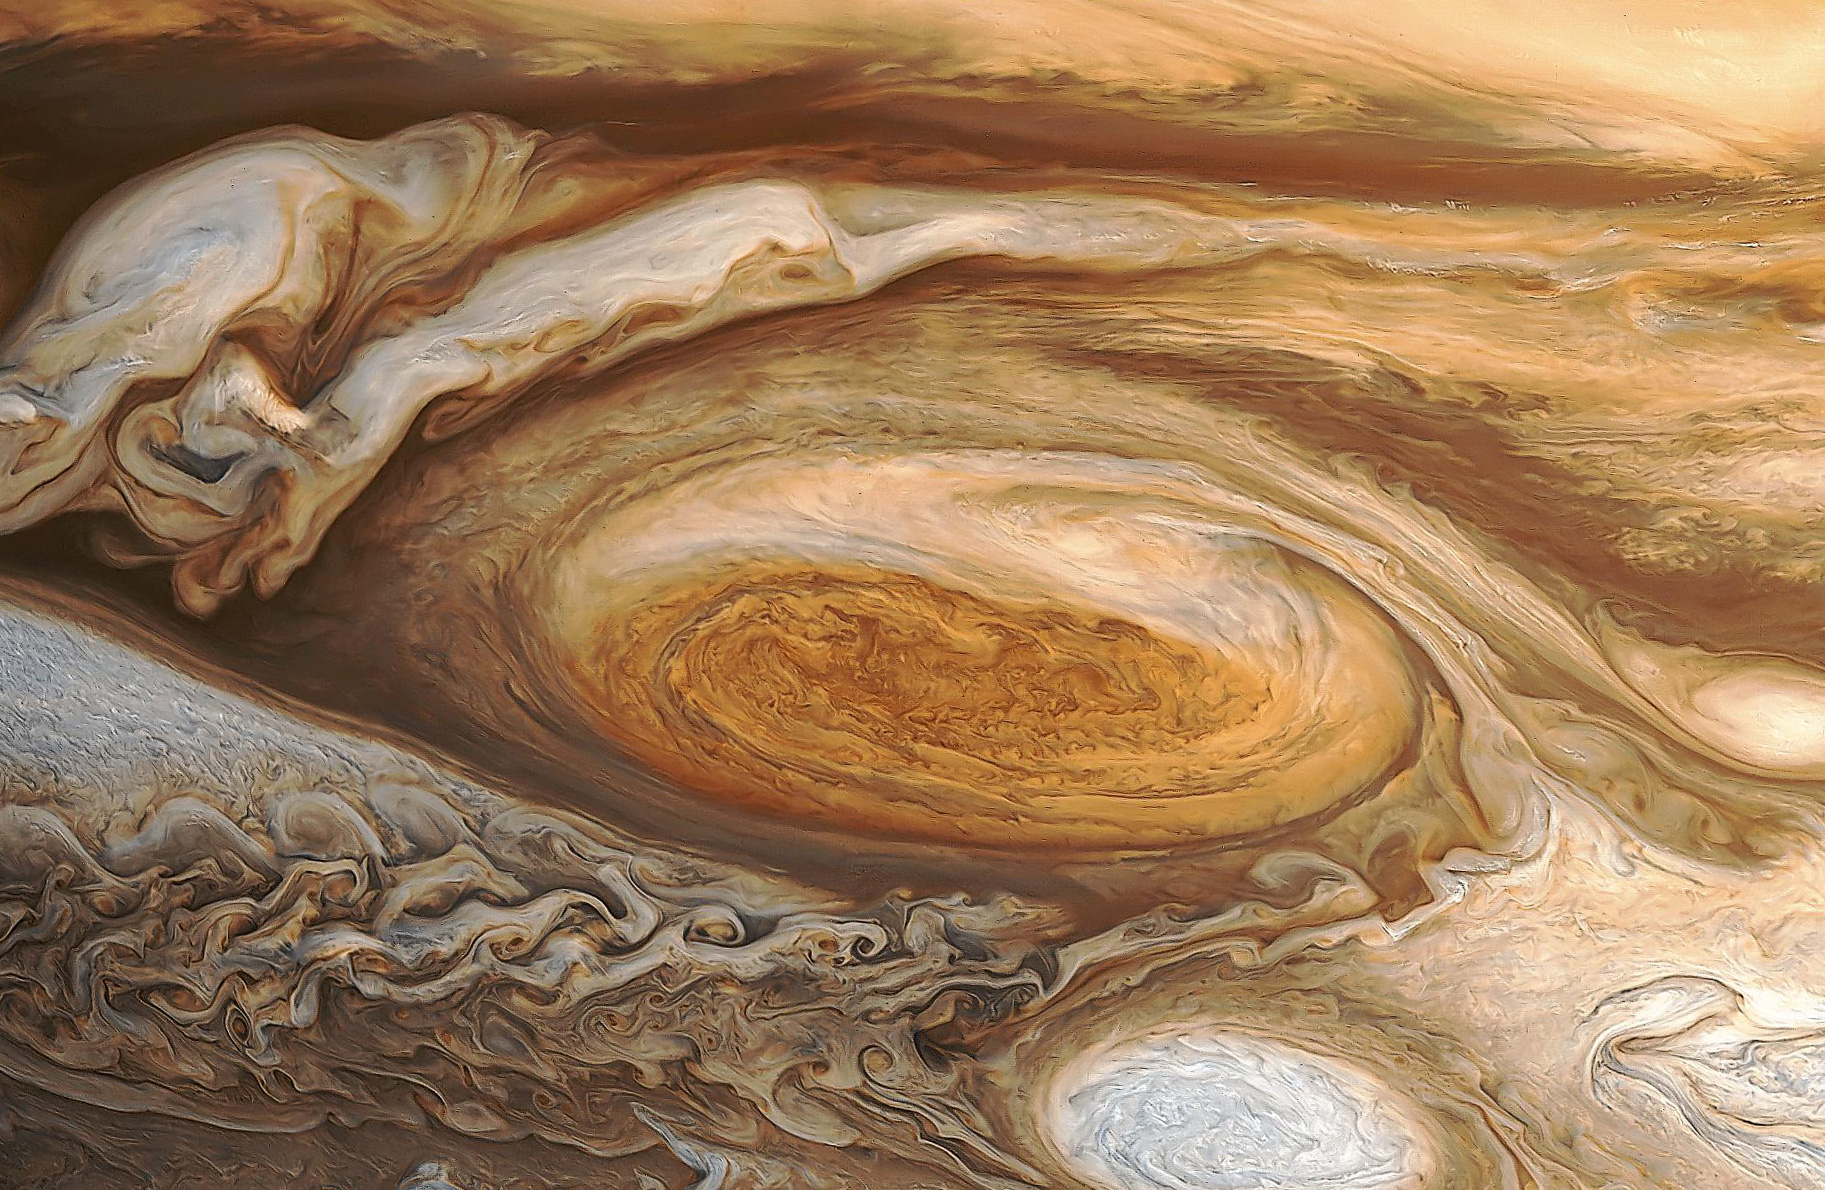 Jupiter Great Red Spot, Great Red Spot, biggest storm in the solar system jupiter, jupiter great red spot is shrinking, great red spot shrinks jupiter, jupiter great red spot shrinks